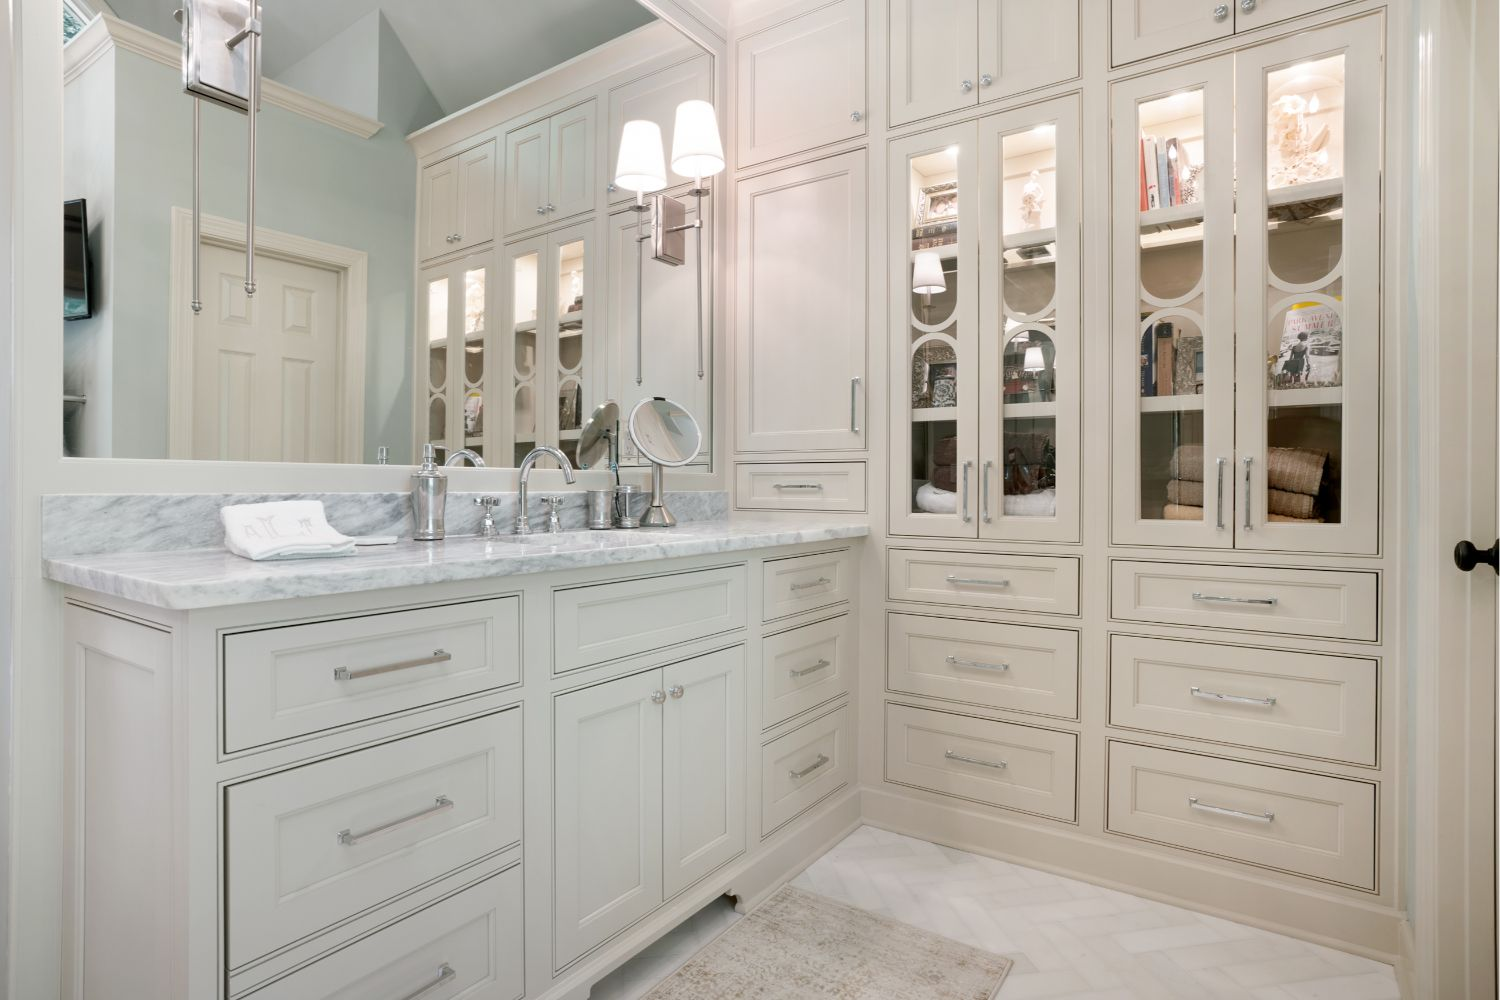 Newly renovated master bath with custom full height linen cabinets.